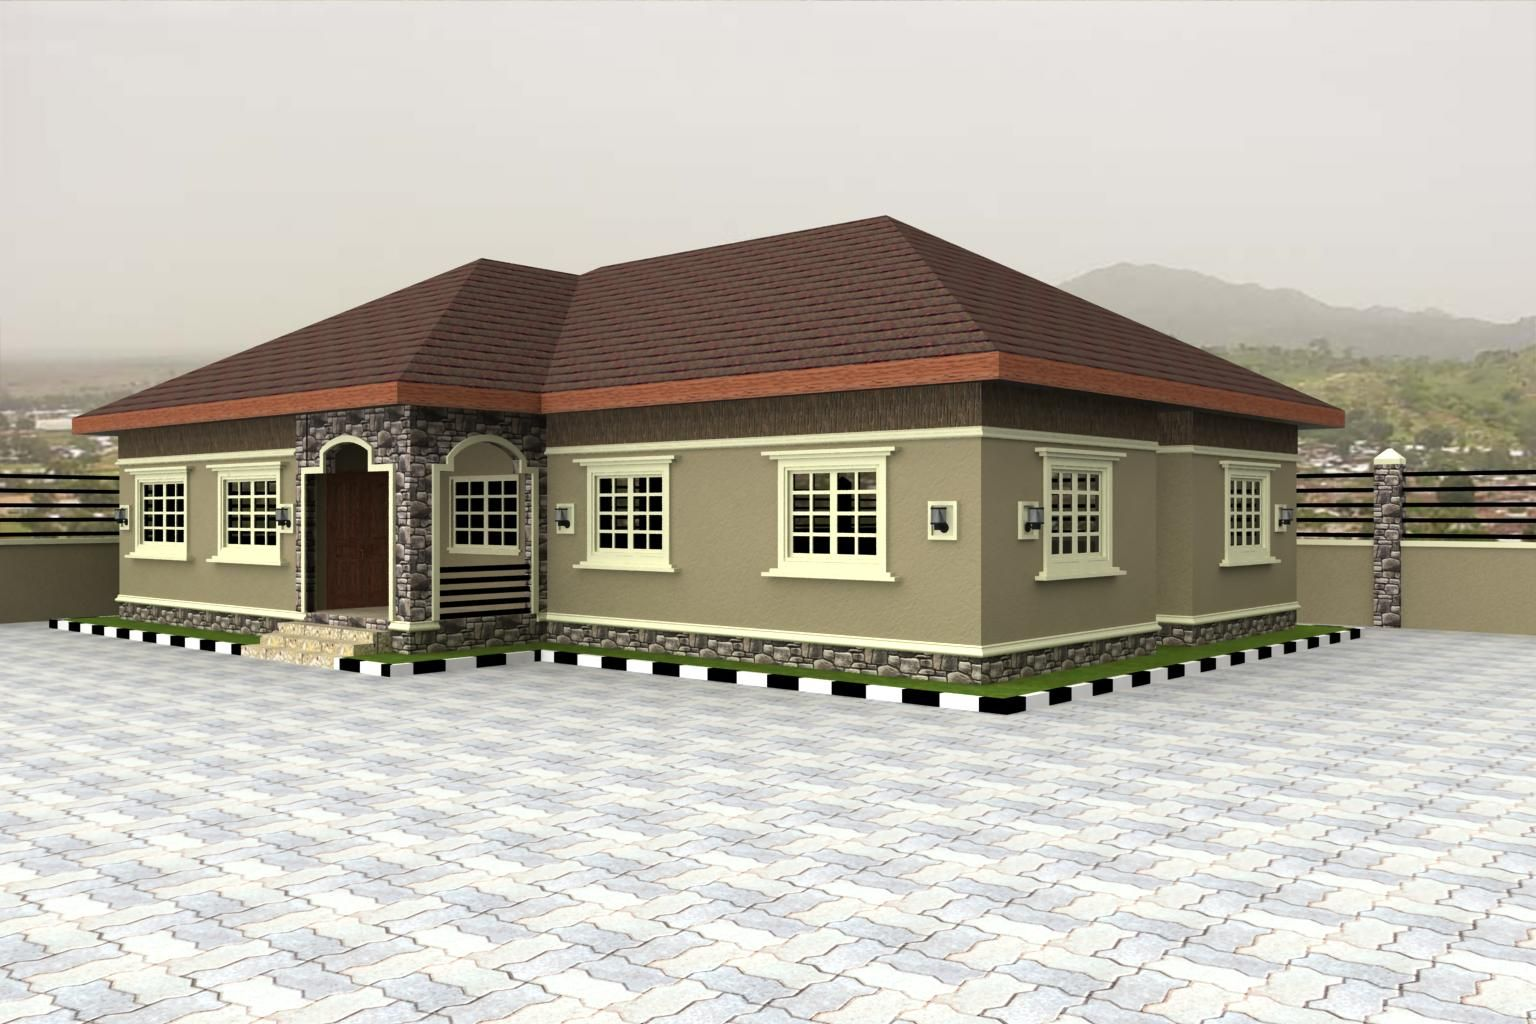 Home plans for bungalows in nigeria properties 4 nairaland for 3 bedroom bungalow house designs